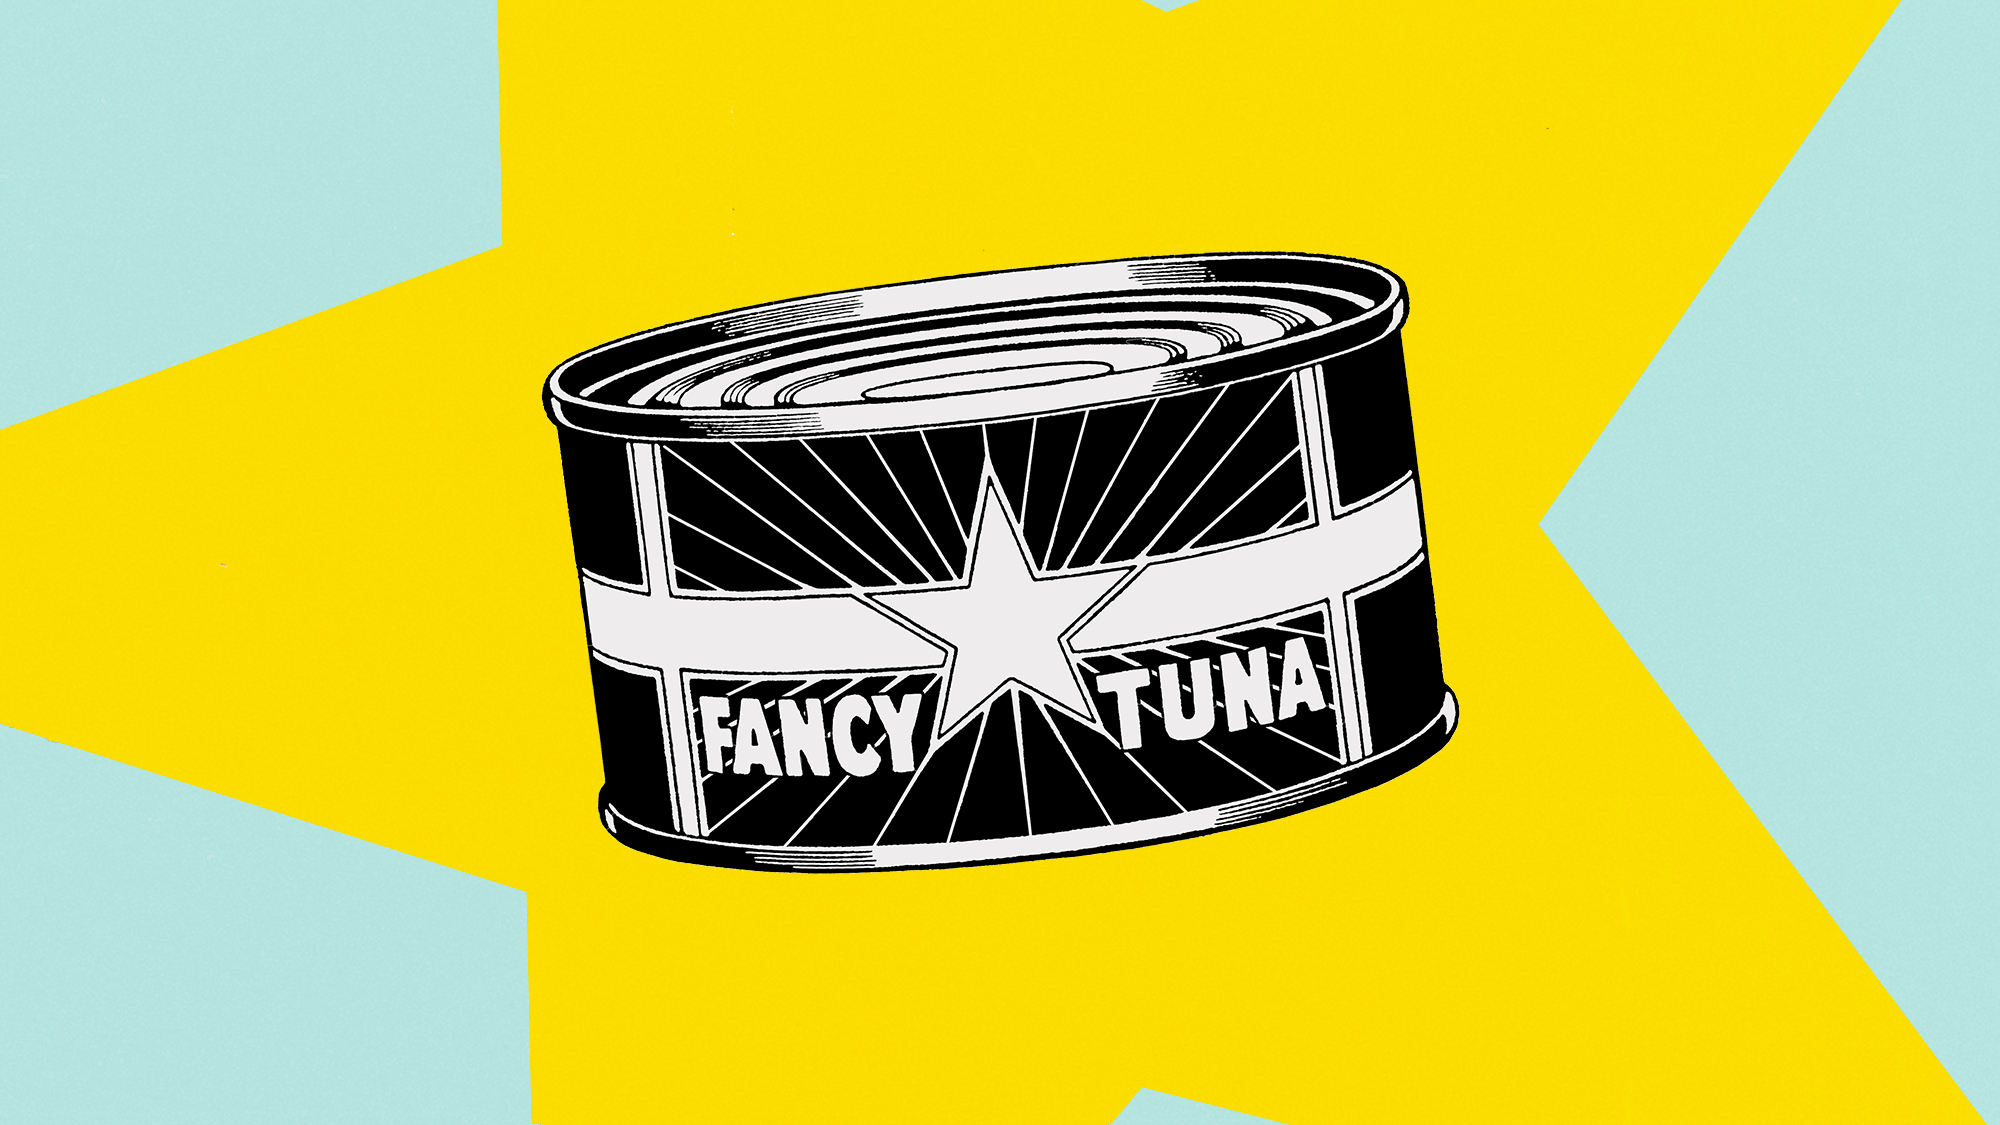 An illustration of a can of tuna on a designed background